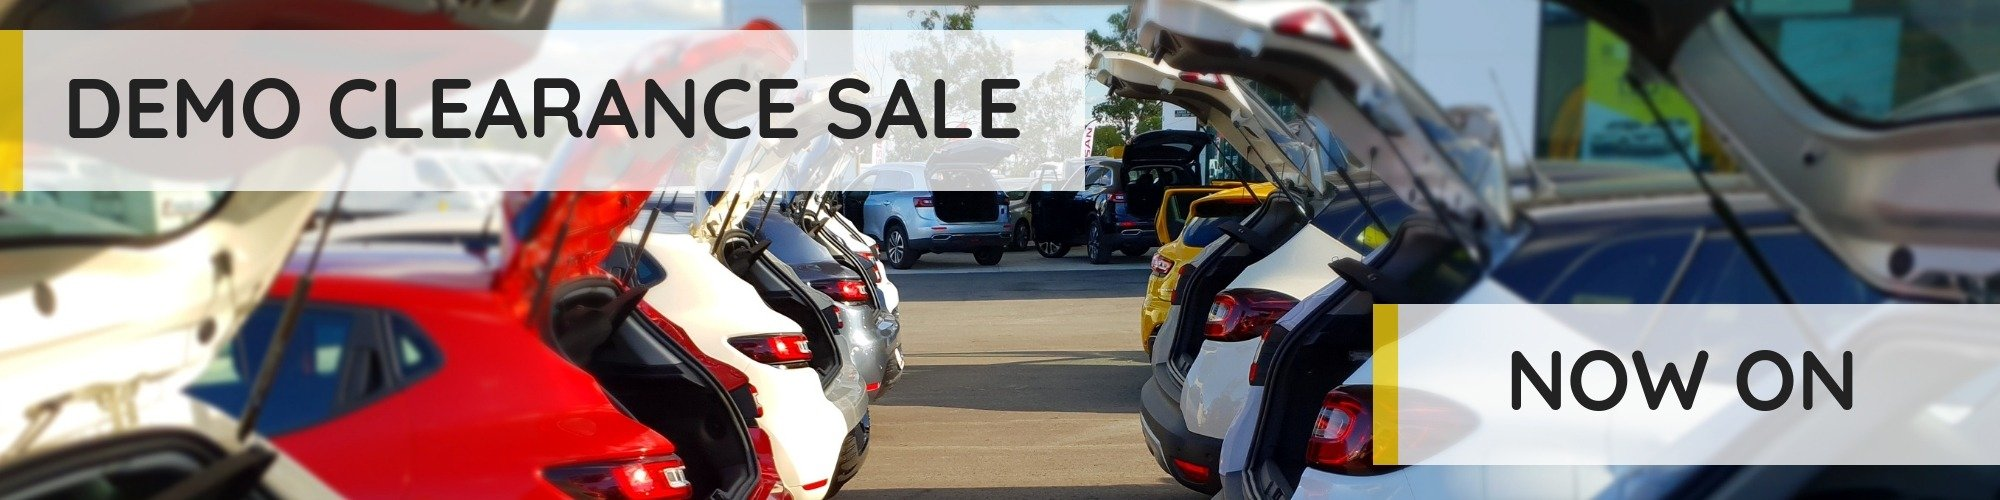 Village Renault Demo Clearance is Now On